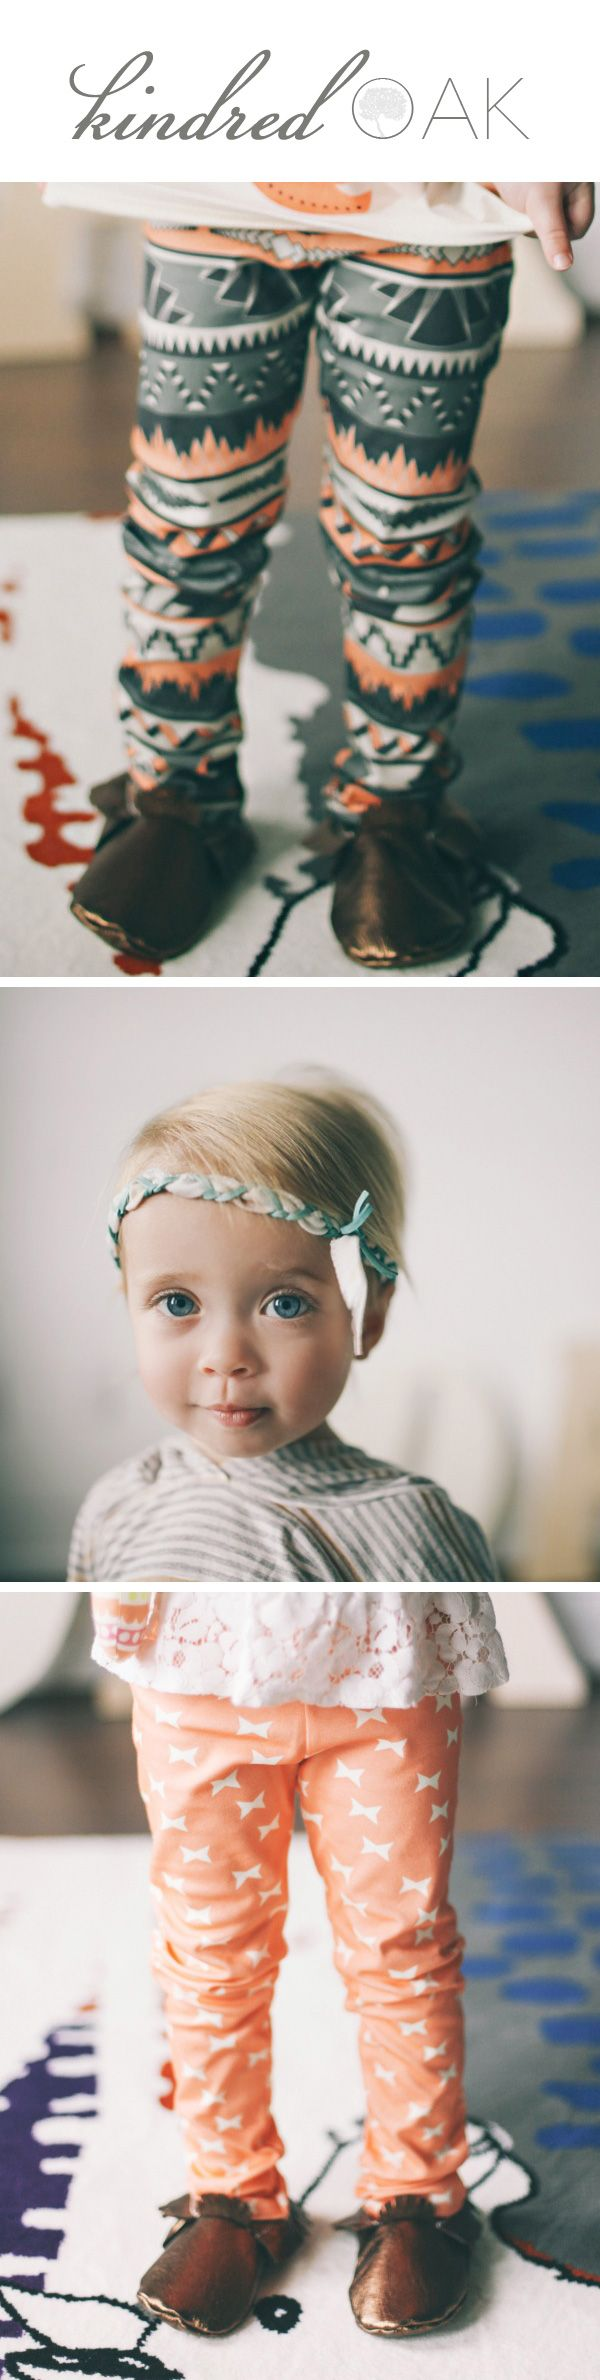 Cute baby clothes!!